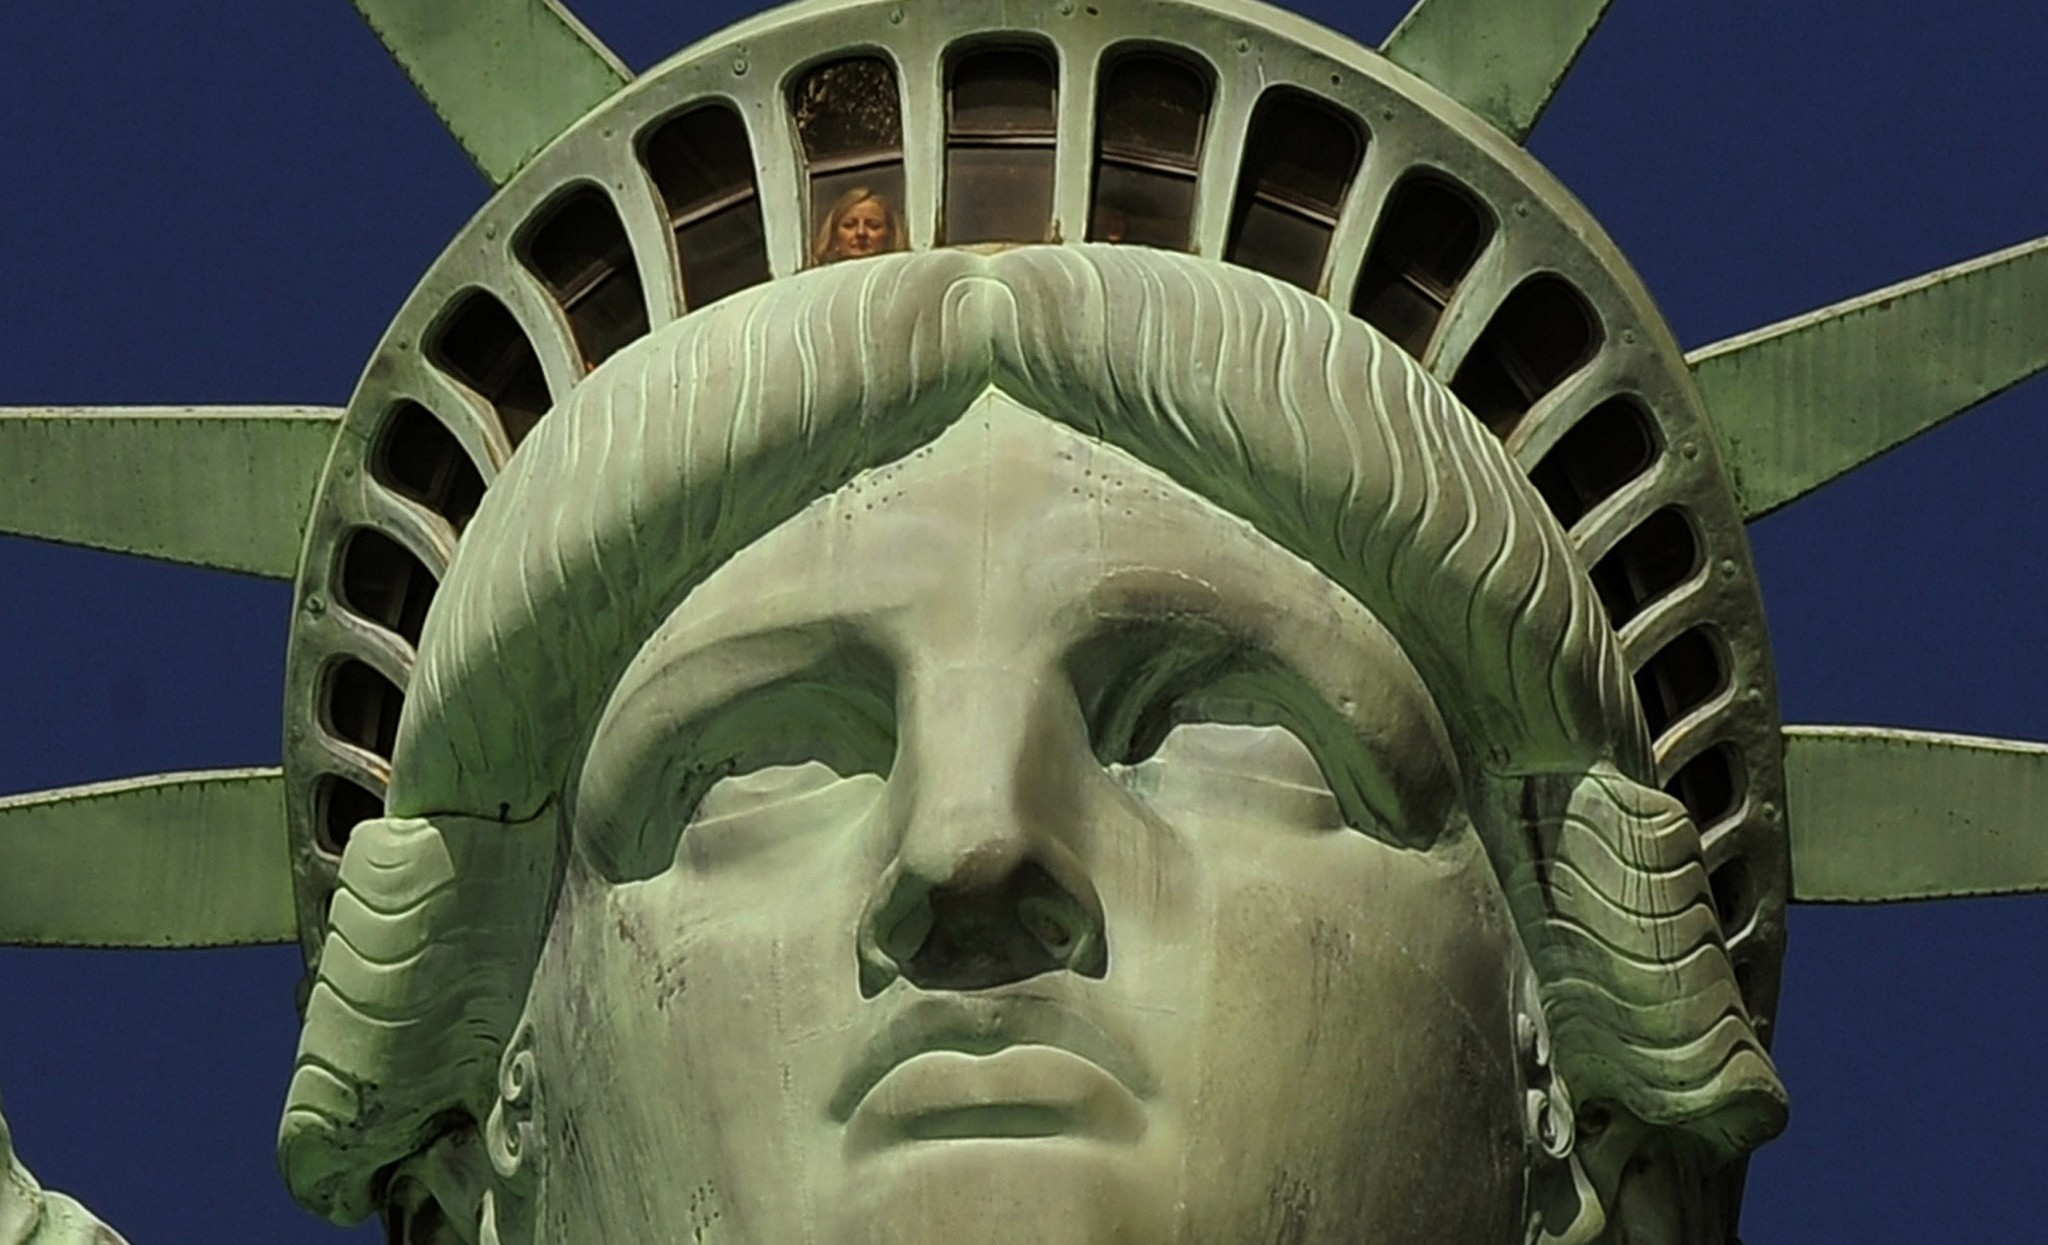 Statue of liberty reopens july 4 baltimore sun buycottarizona Gallery